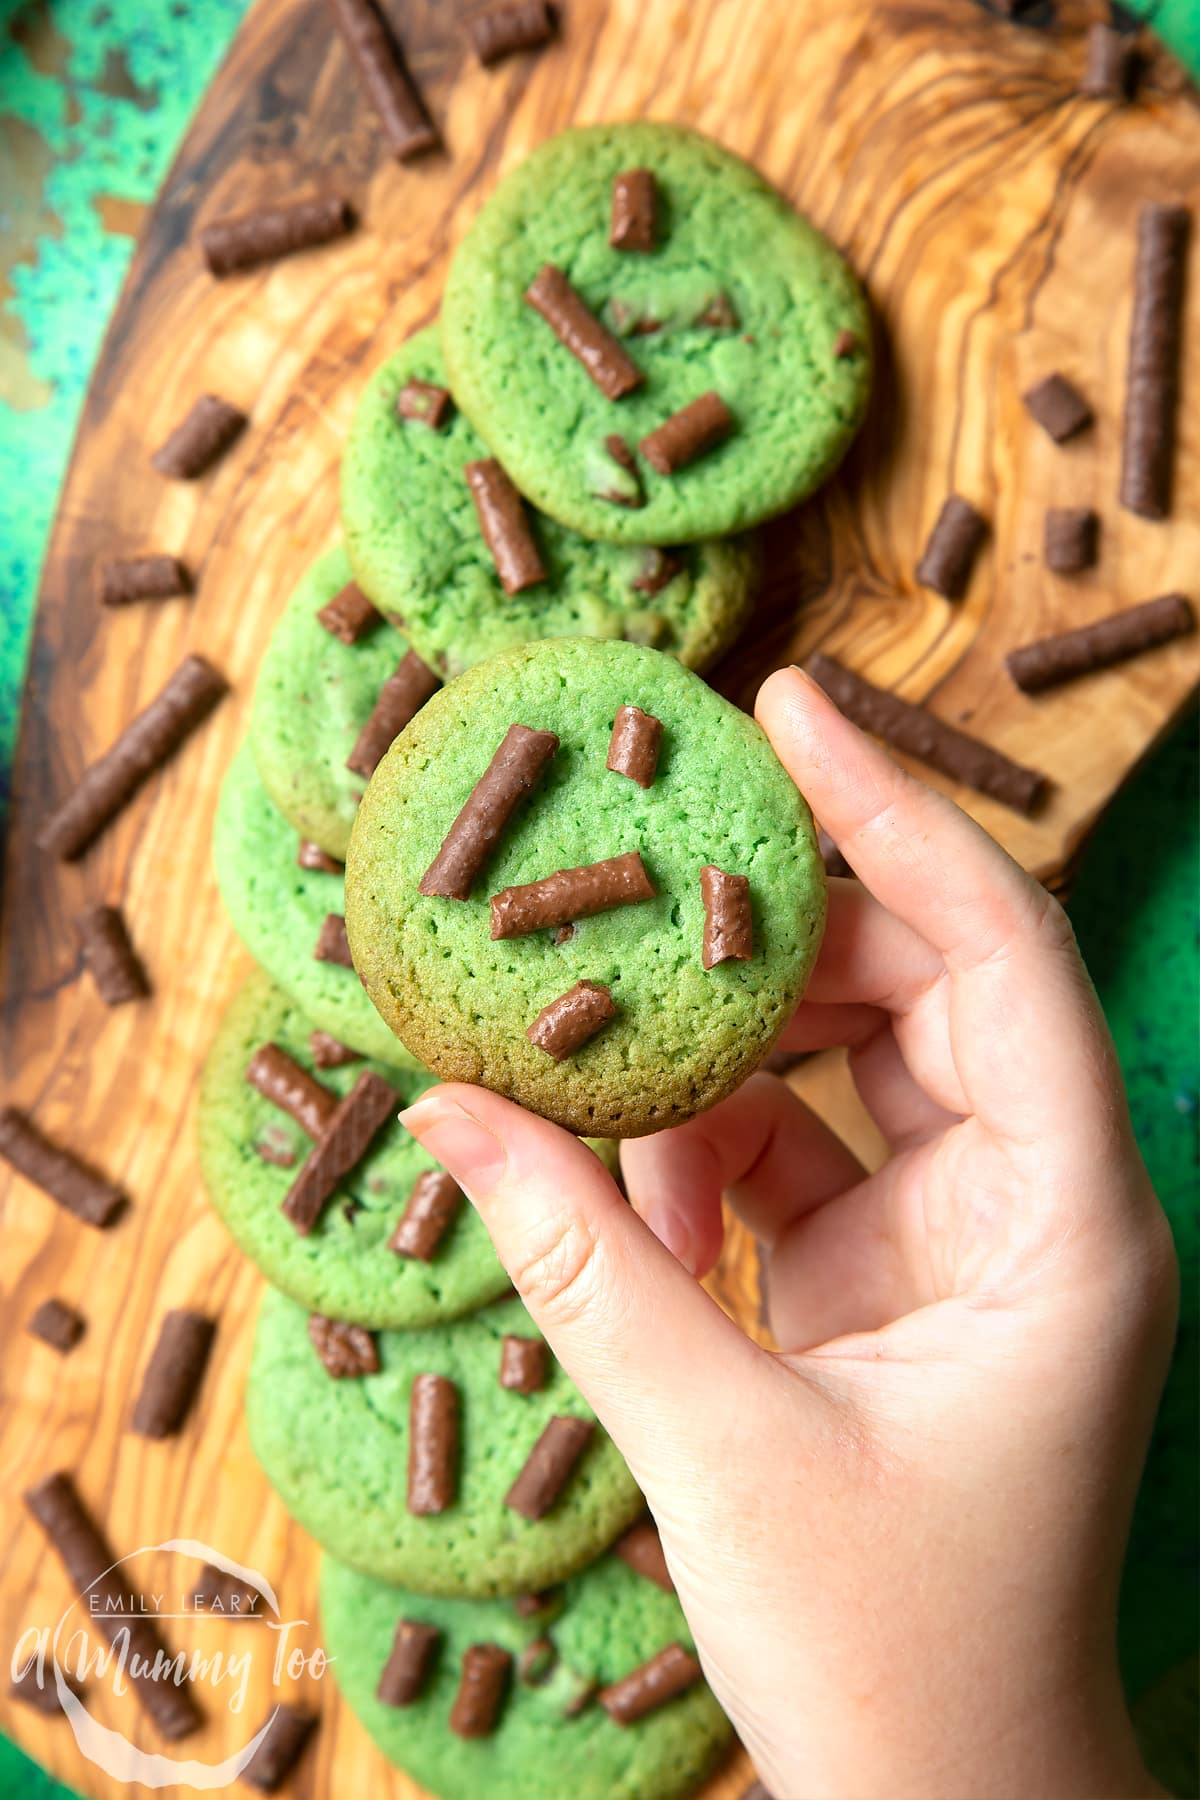 Hand holding a green cookie topped with Matchmaker pieces. More Matchmaker cookies are arranged on a wooden board below.